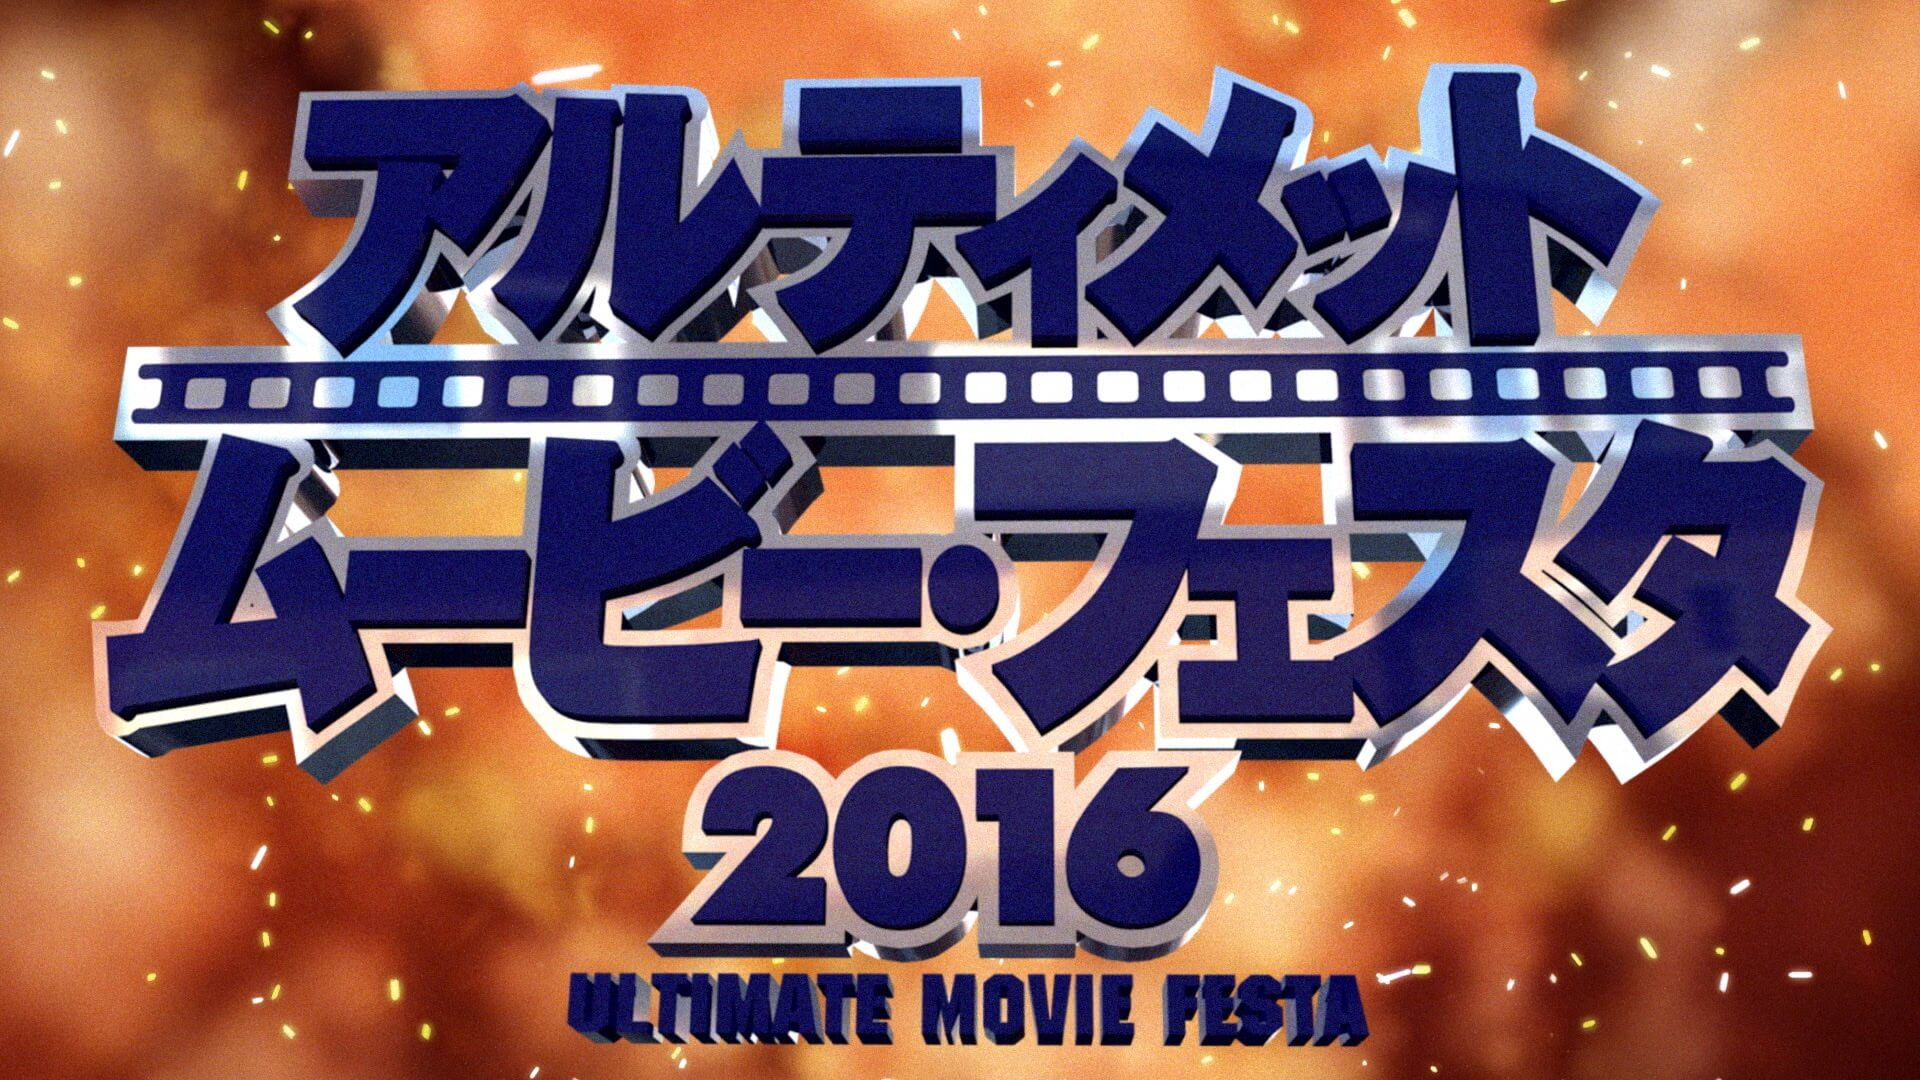 Ultimate Movie Fest 2016